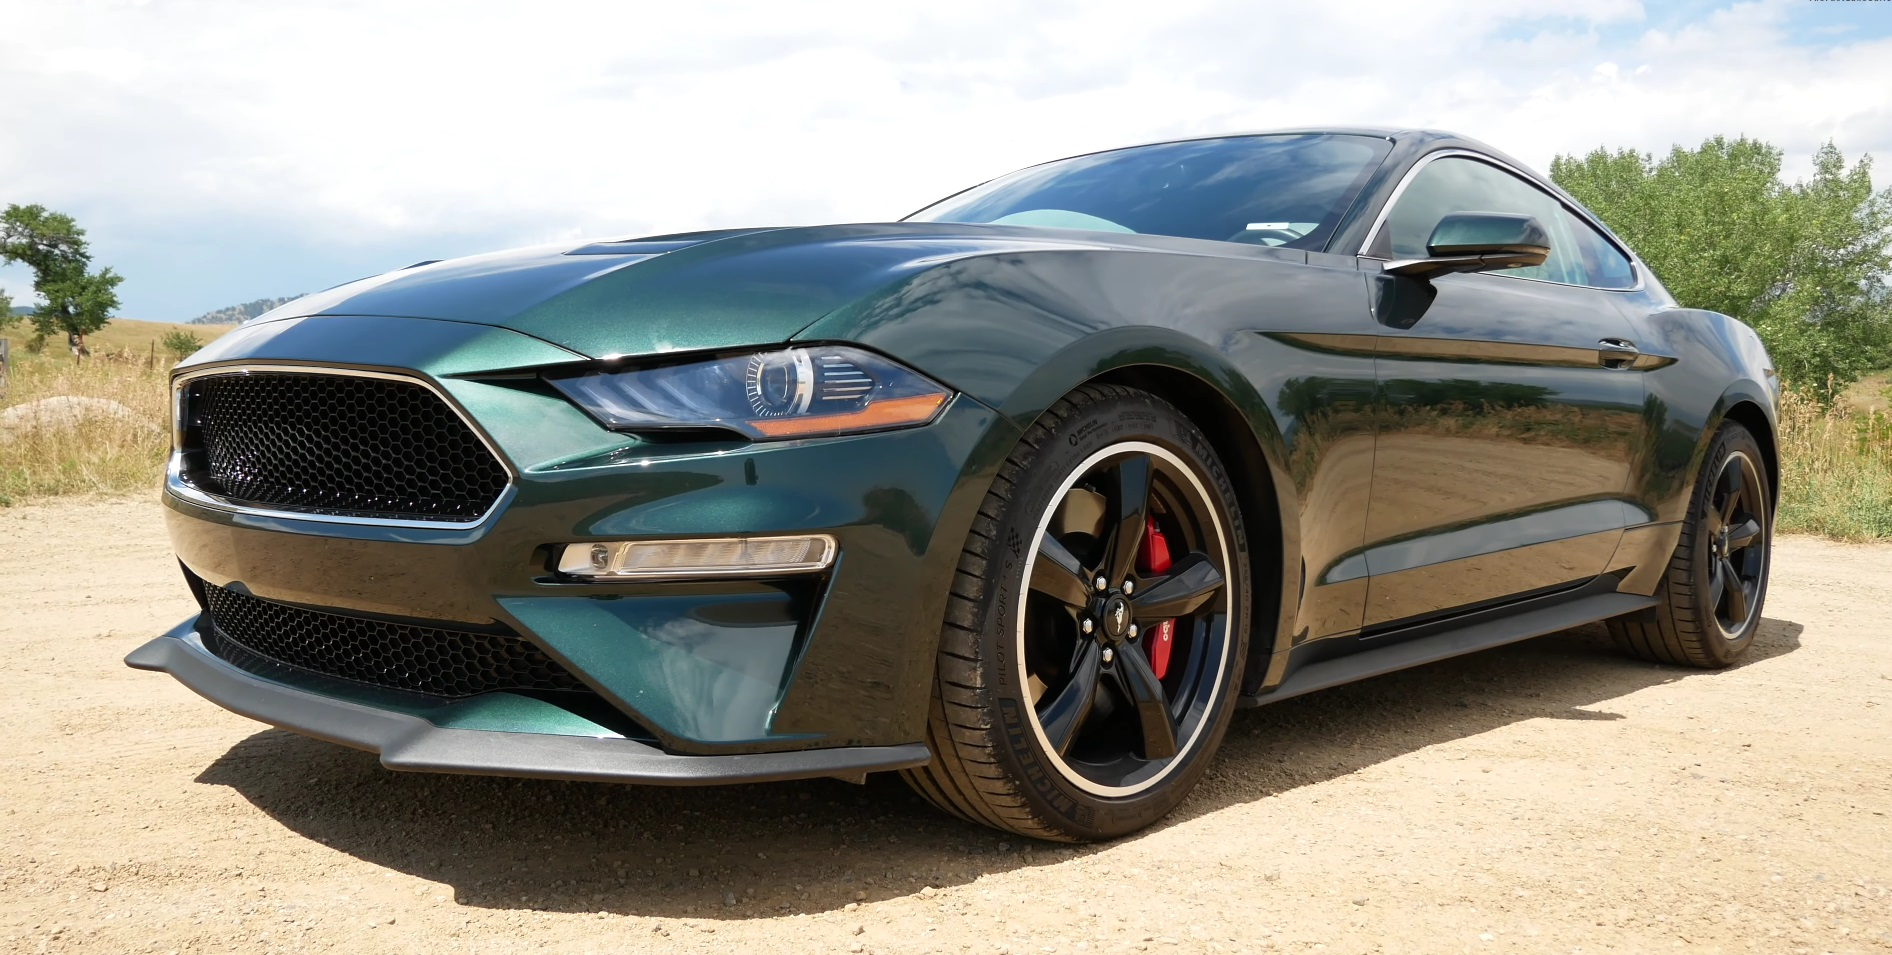 Video: The 2019 Ford Mustang Bullitt Is The Greatest Mustang Ford's Ever Built